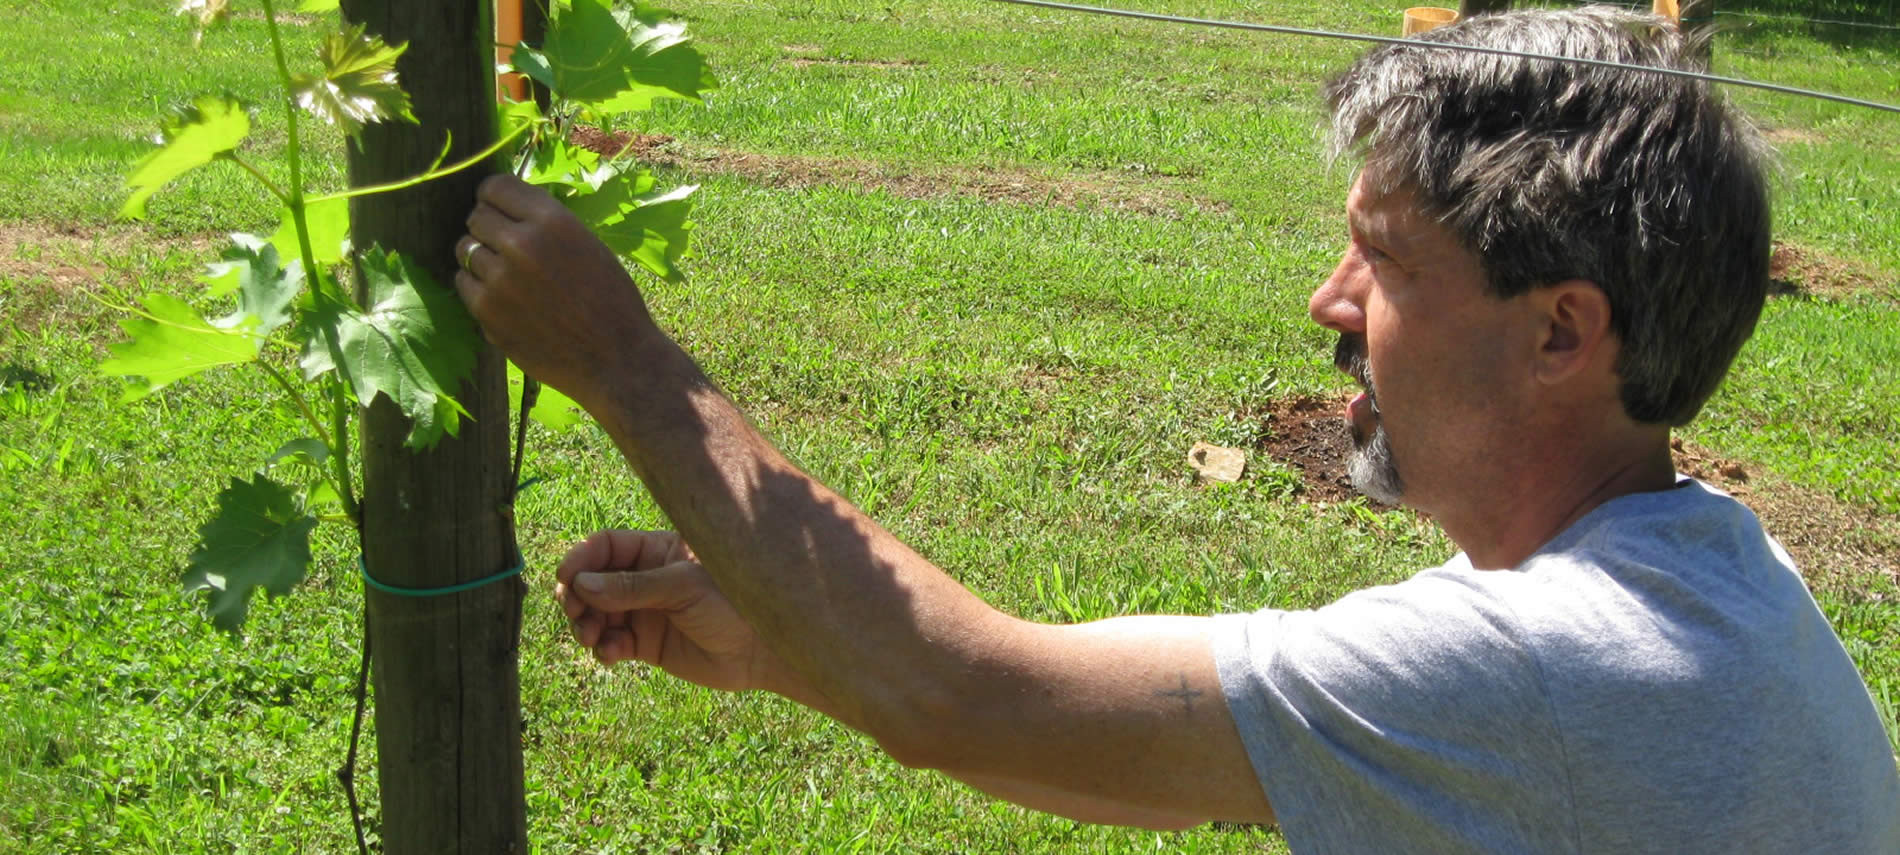 Tour guide tending young spring vines at Arcady Vineyard